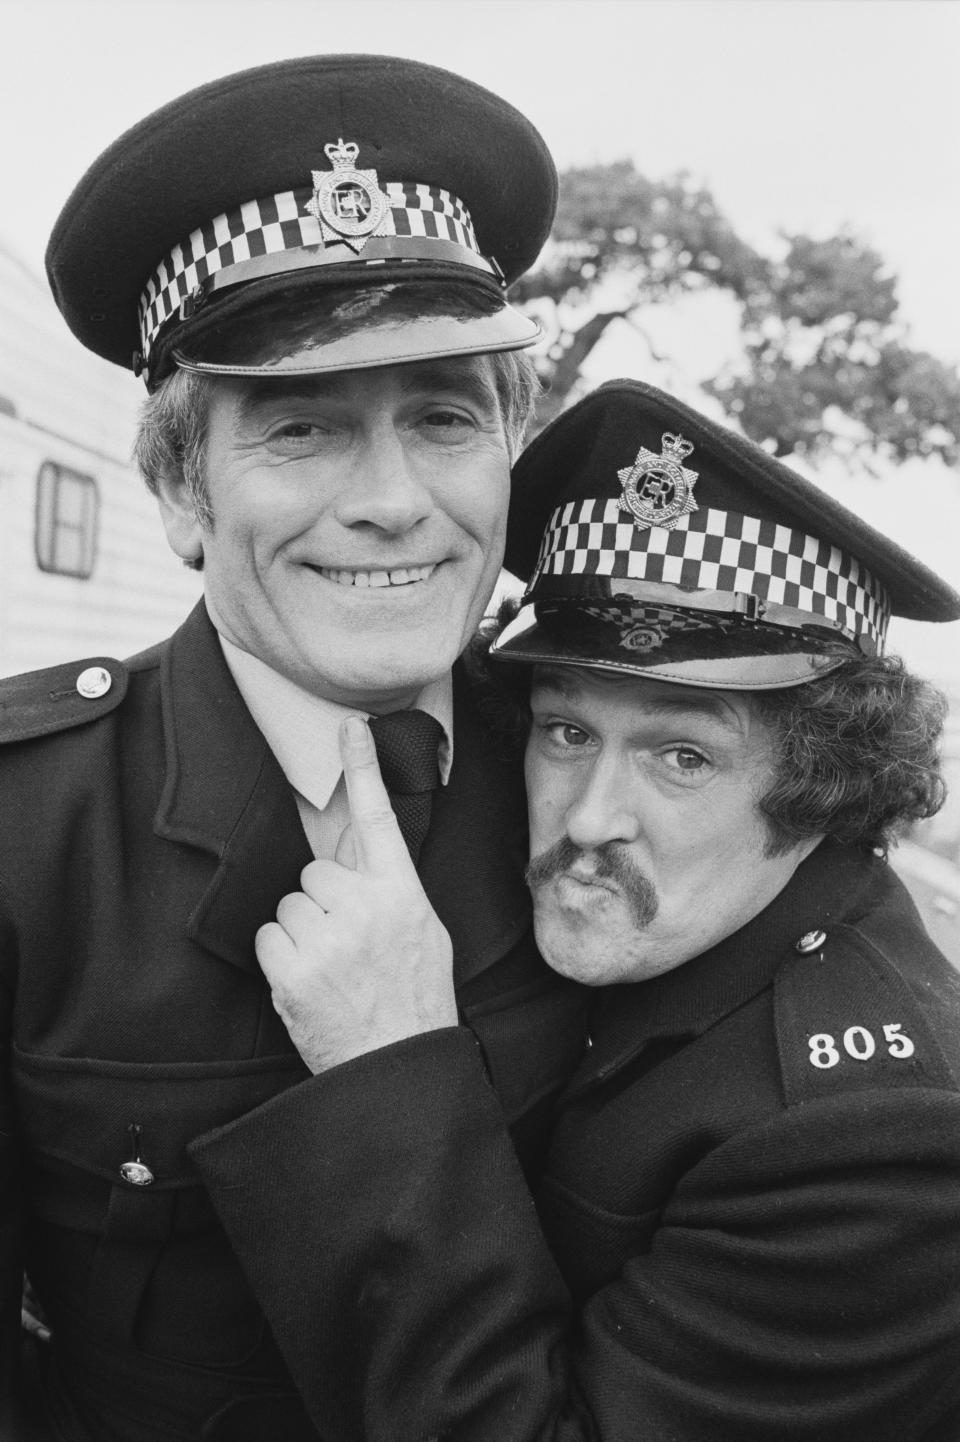 'Cannon and Ball', English comedian, actor, and singer Bobby Ball and English comedian and singer Tommy Cannon, co-stars in movie 'The Boys in Blue', UK, 13th November 1982. (Photo by Hilaria McCarthy/Daily Express/Hulton Archive/Getty Images)